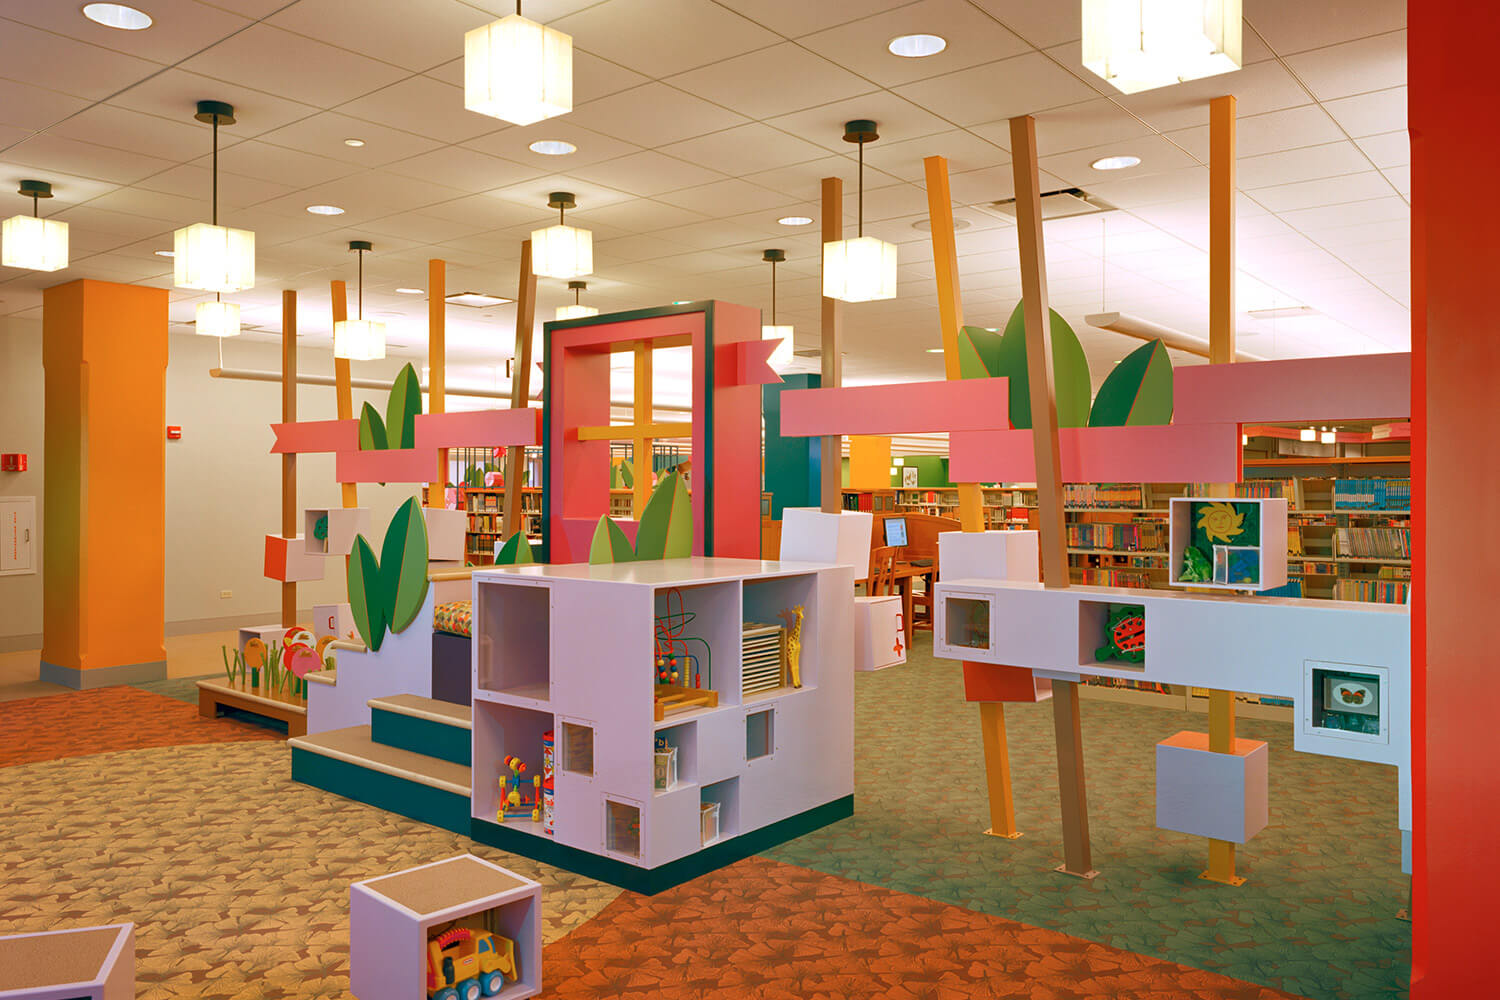 Evanston Public Library Renovation children's section 13